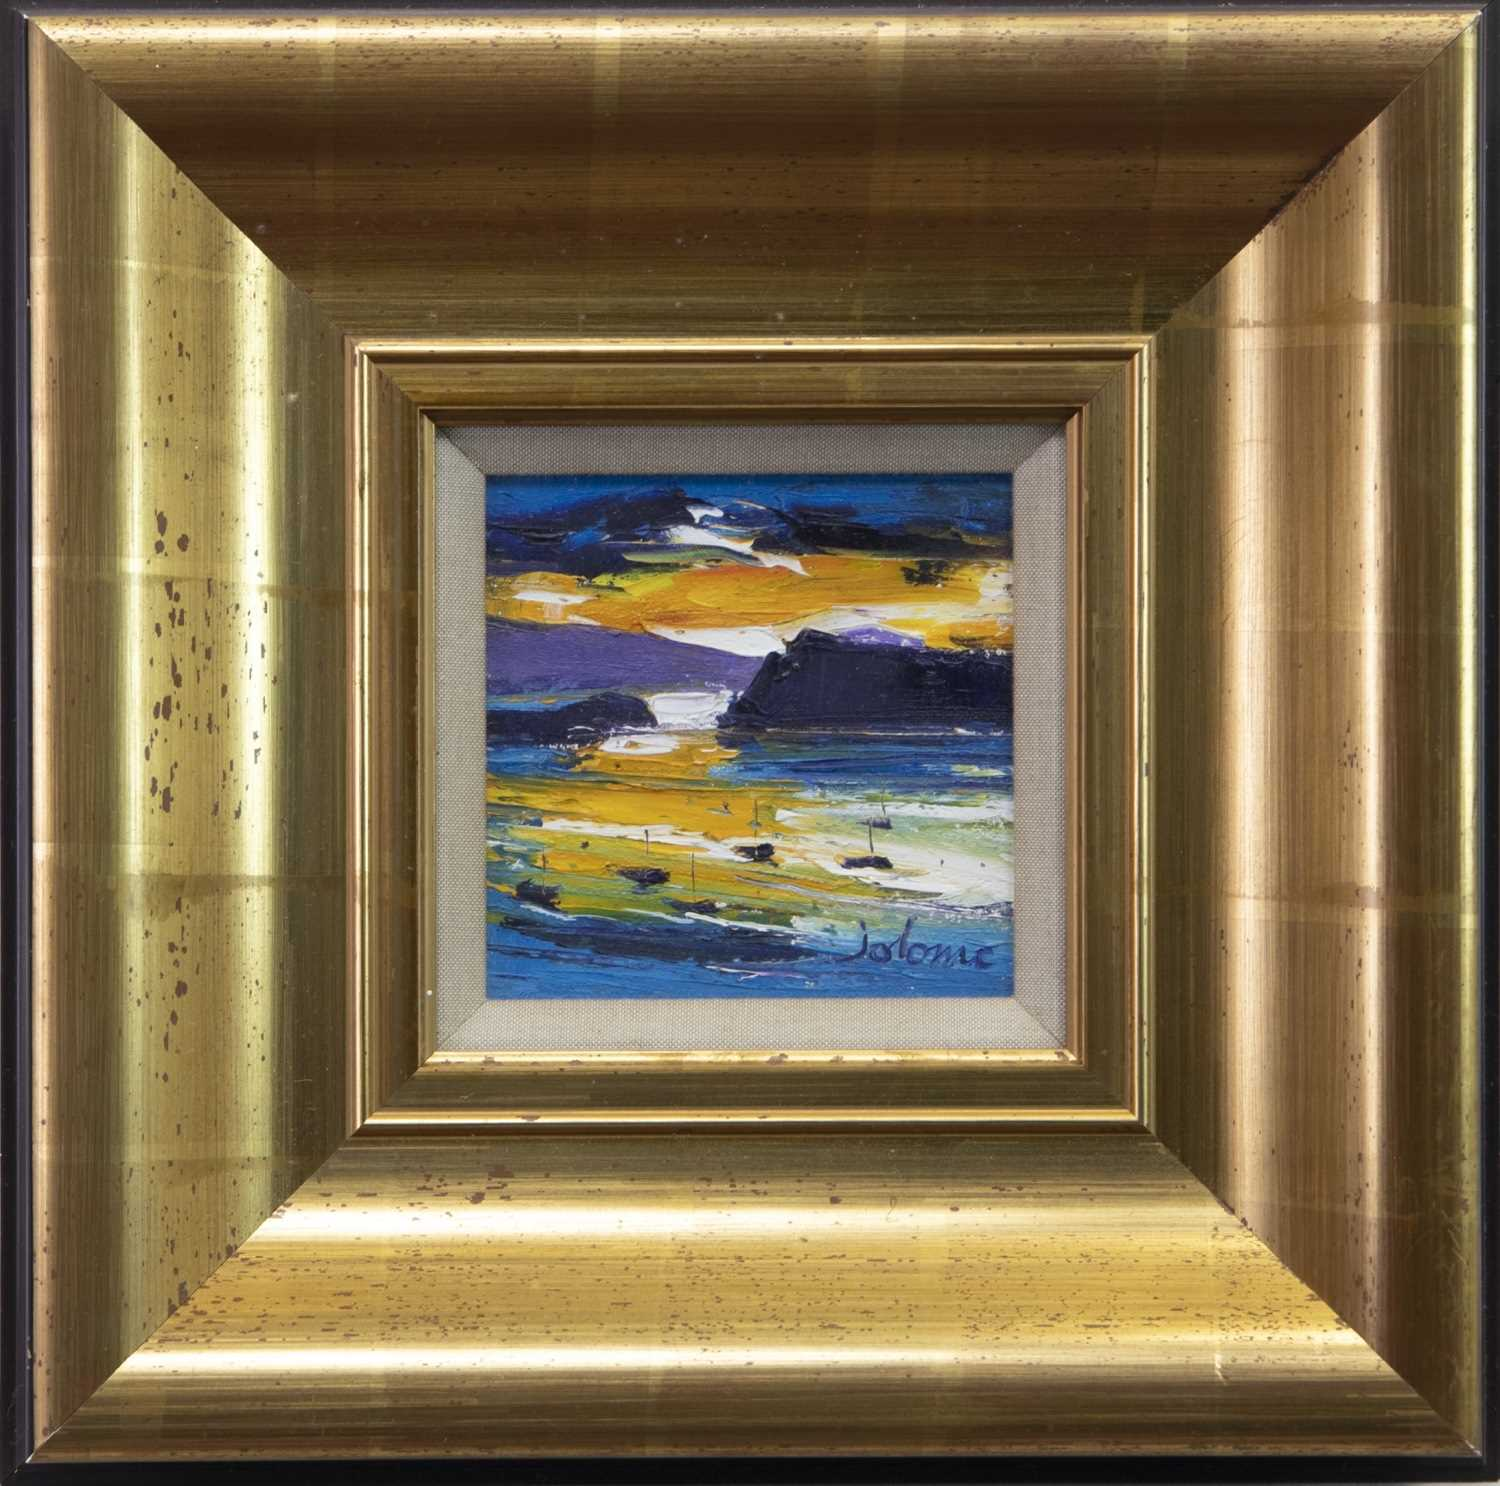 Lot 775 - SUNRISE AT TOBERMORY, AN OIL BY JOLOMO